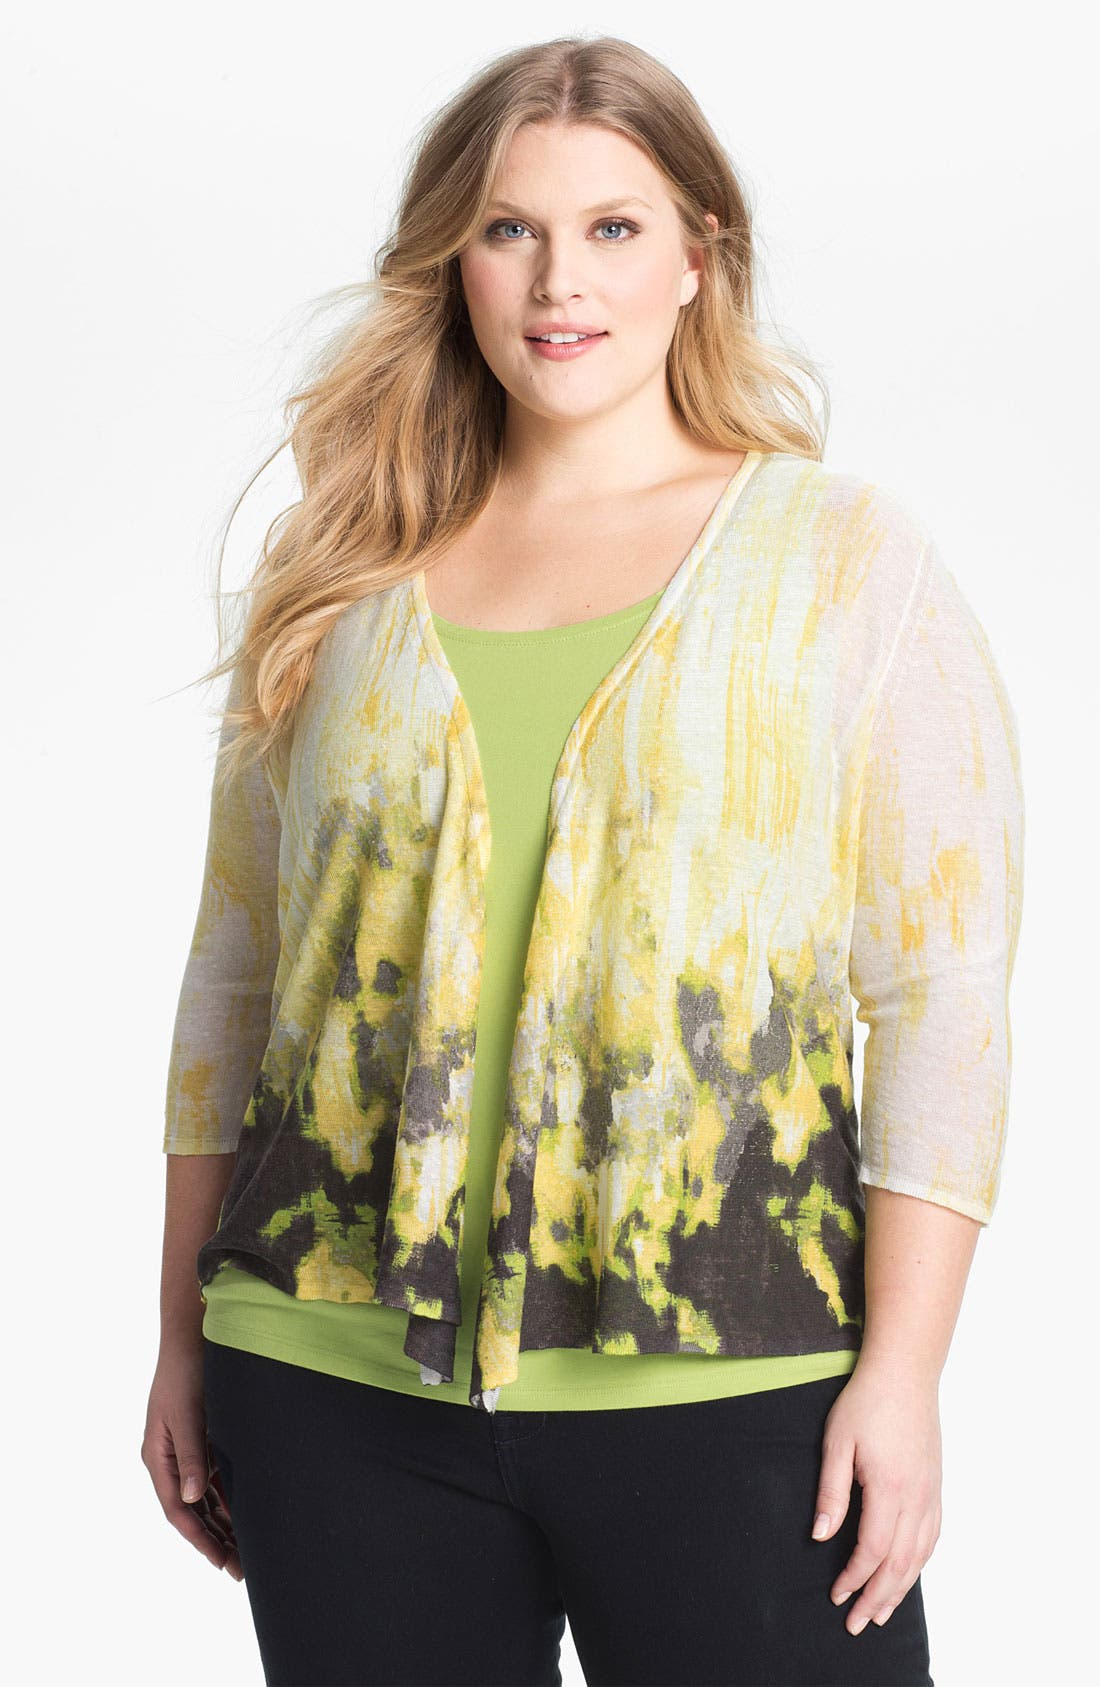 Alternate Image 1 Selected - Nic + Zoe 'Four Way' Print Cardigan (Plus Size)